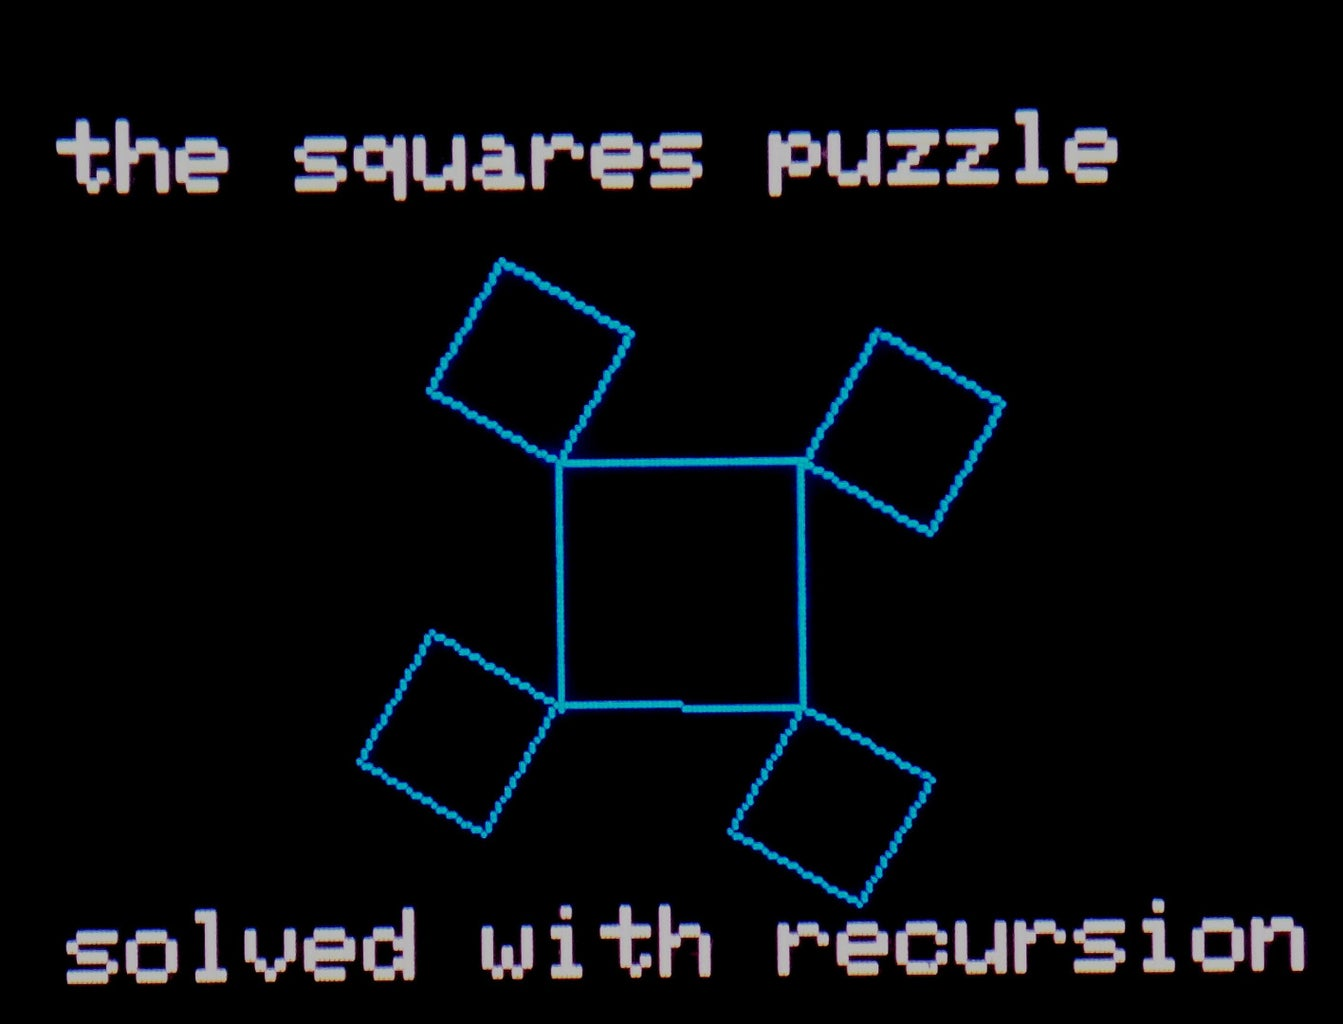 Try Some Puzzles